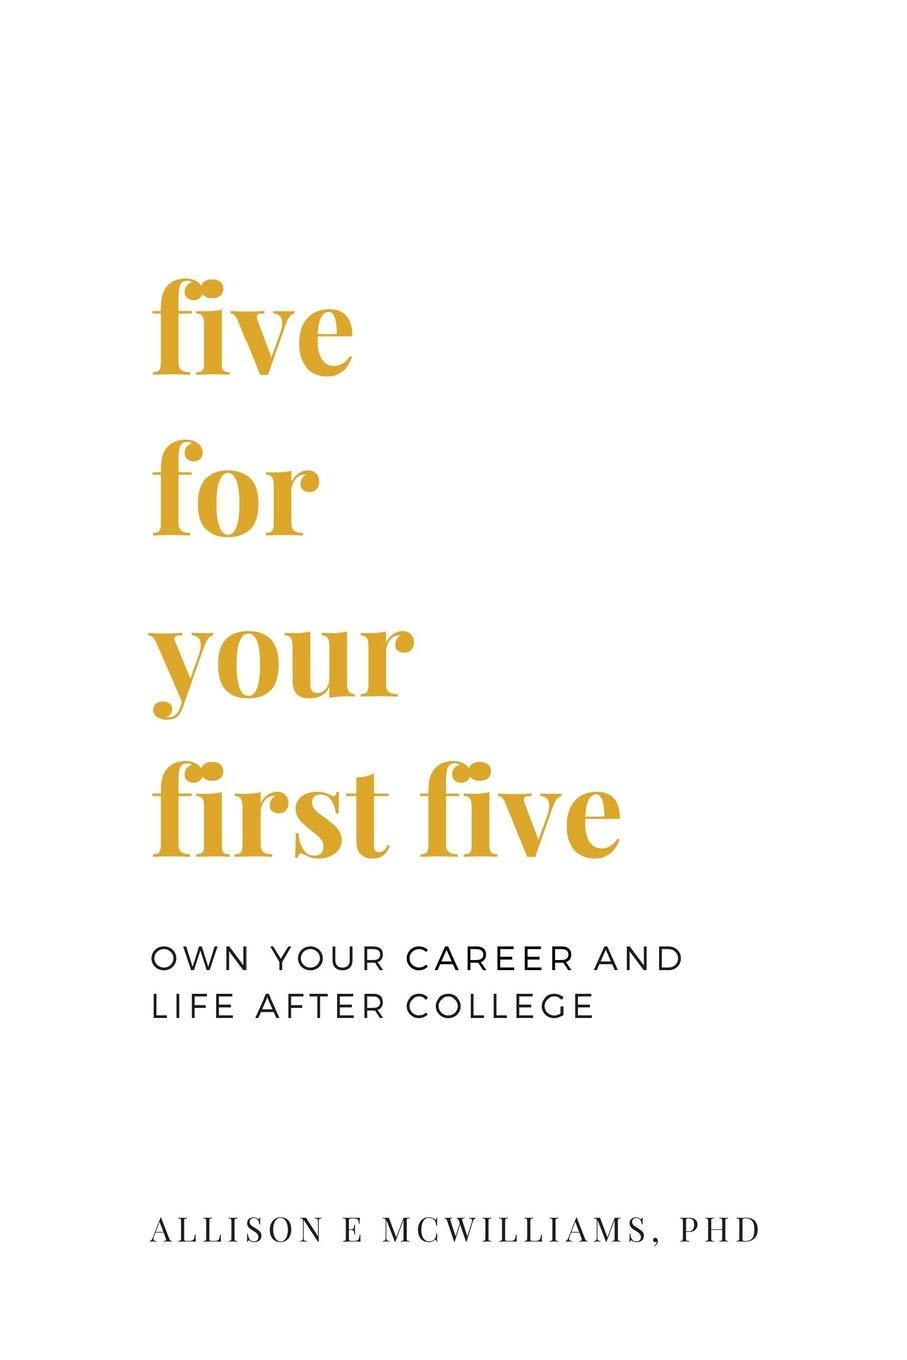 five for your first five own your career and life after college mcwilliams phd allison e beam lauren r hatch nathan o 9781618460431 amazon com books mcwilliams phd allison e